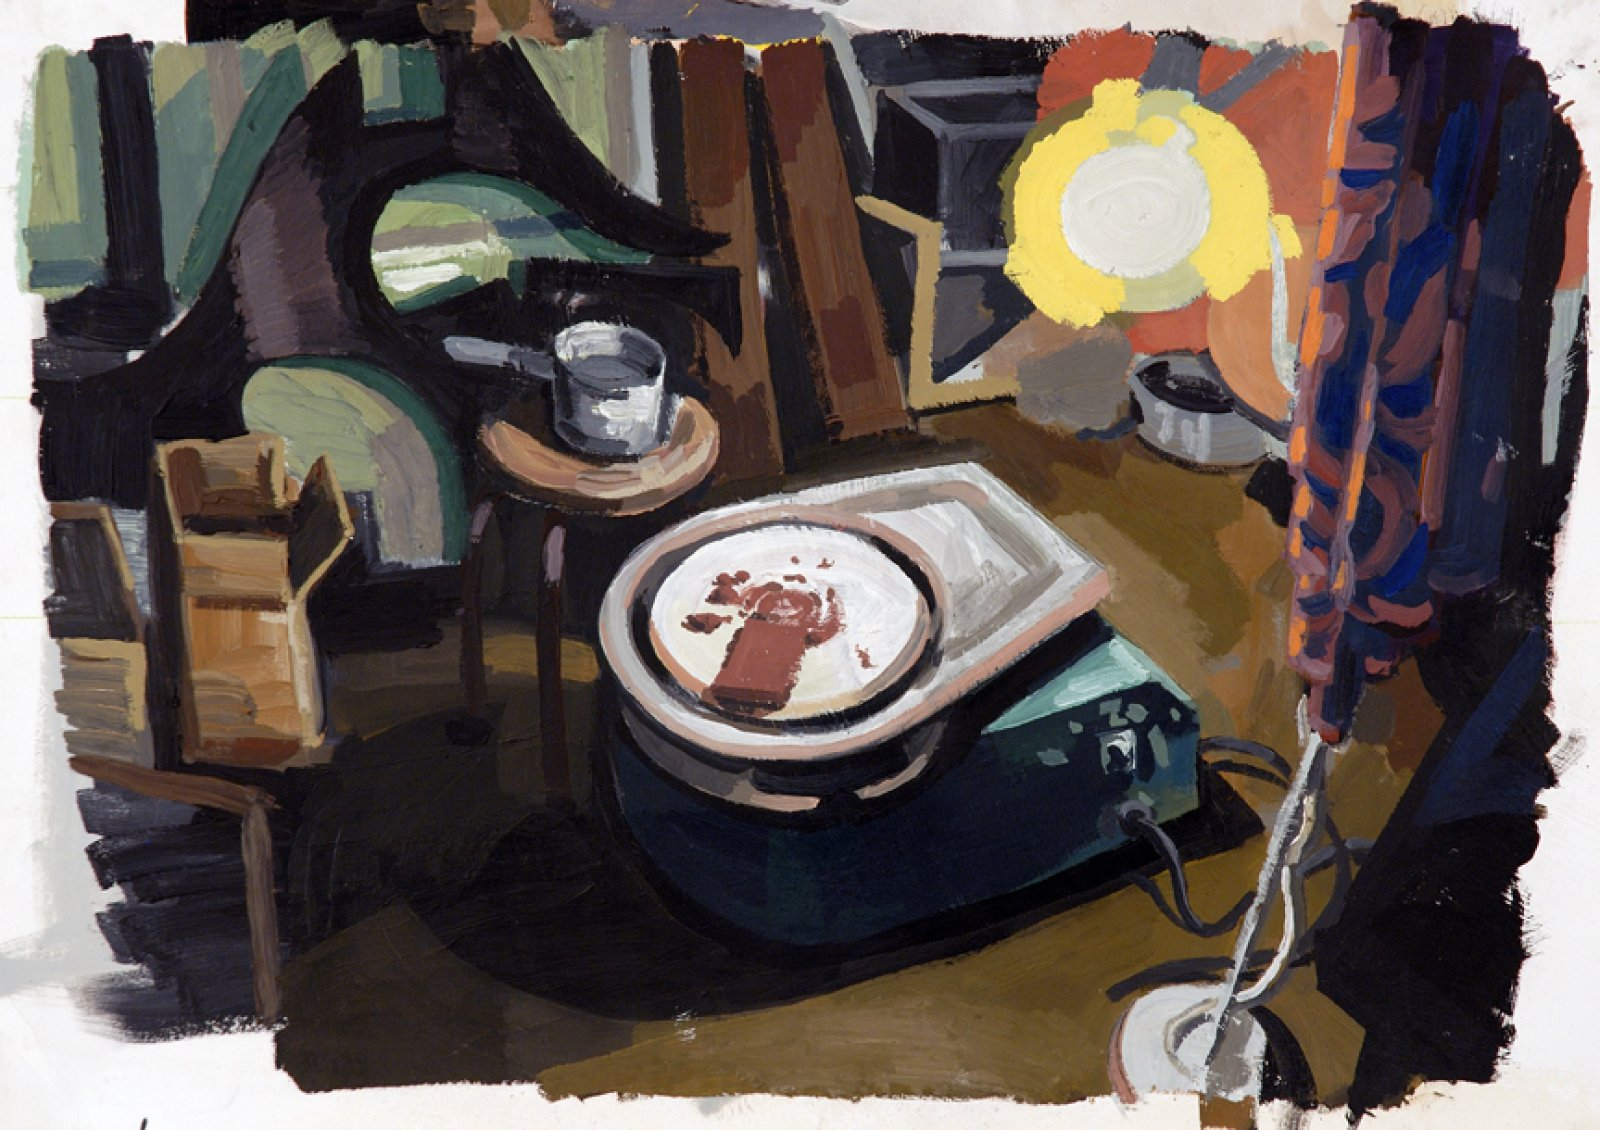 Damian Moppett, Pottery Wheel in Basement, 2006, oil on paper, 26 x 34 in. (66 x 87 cm) by Damian Moppett